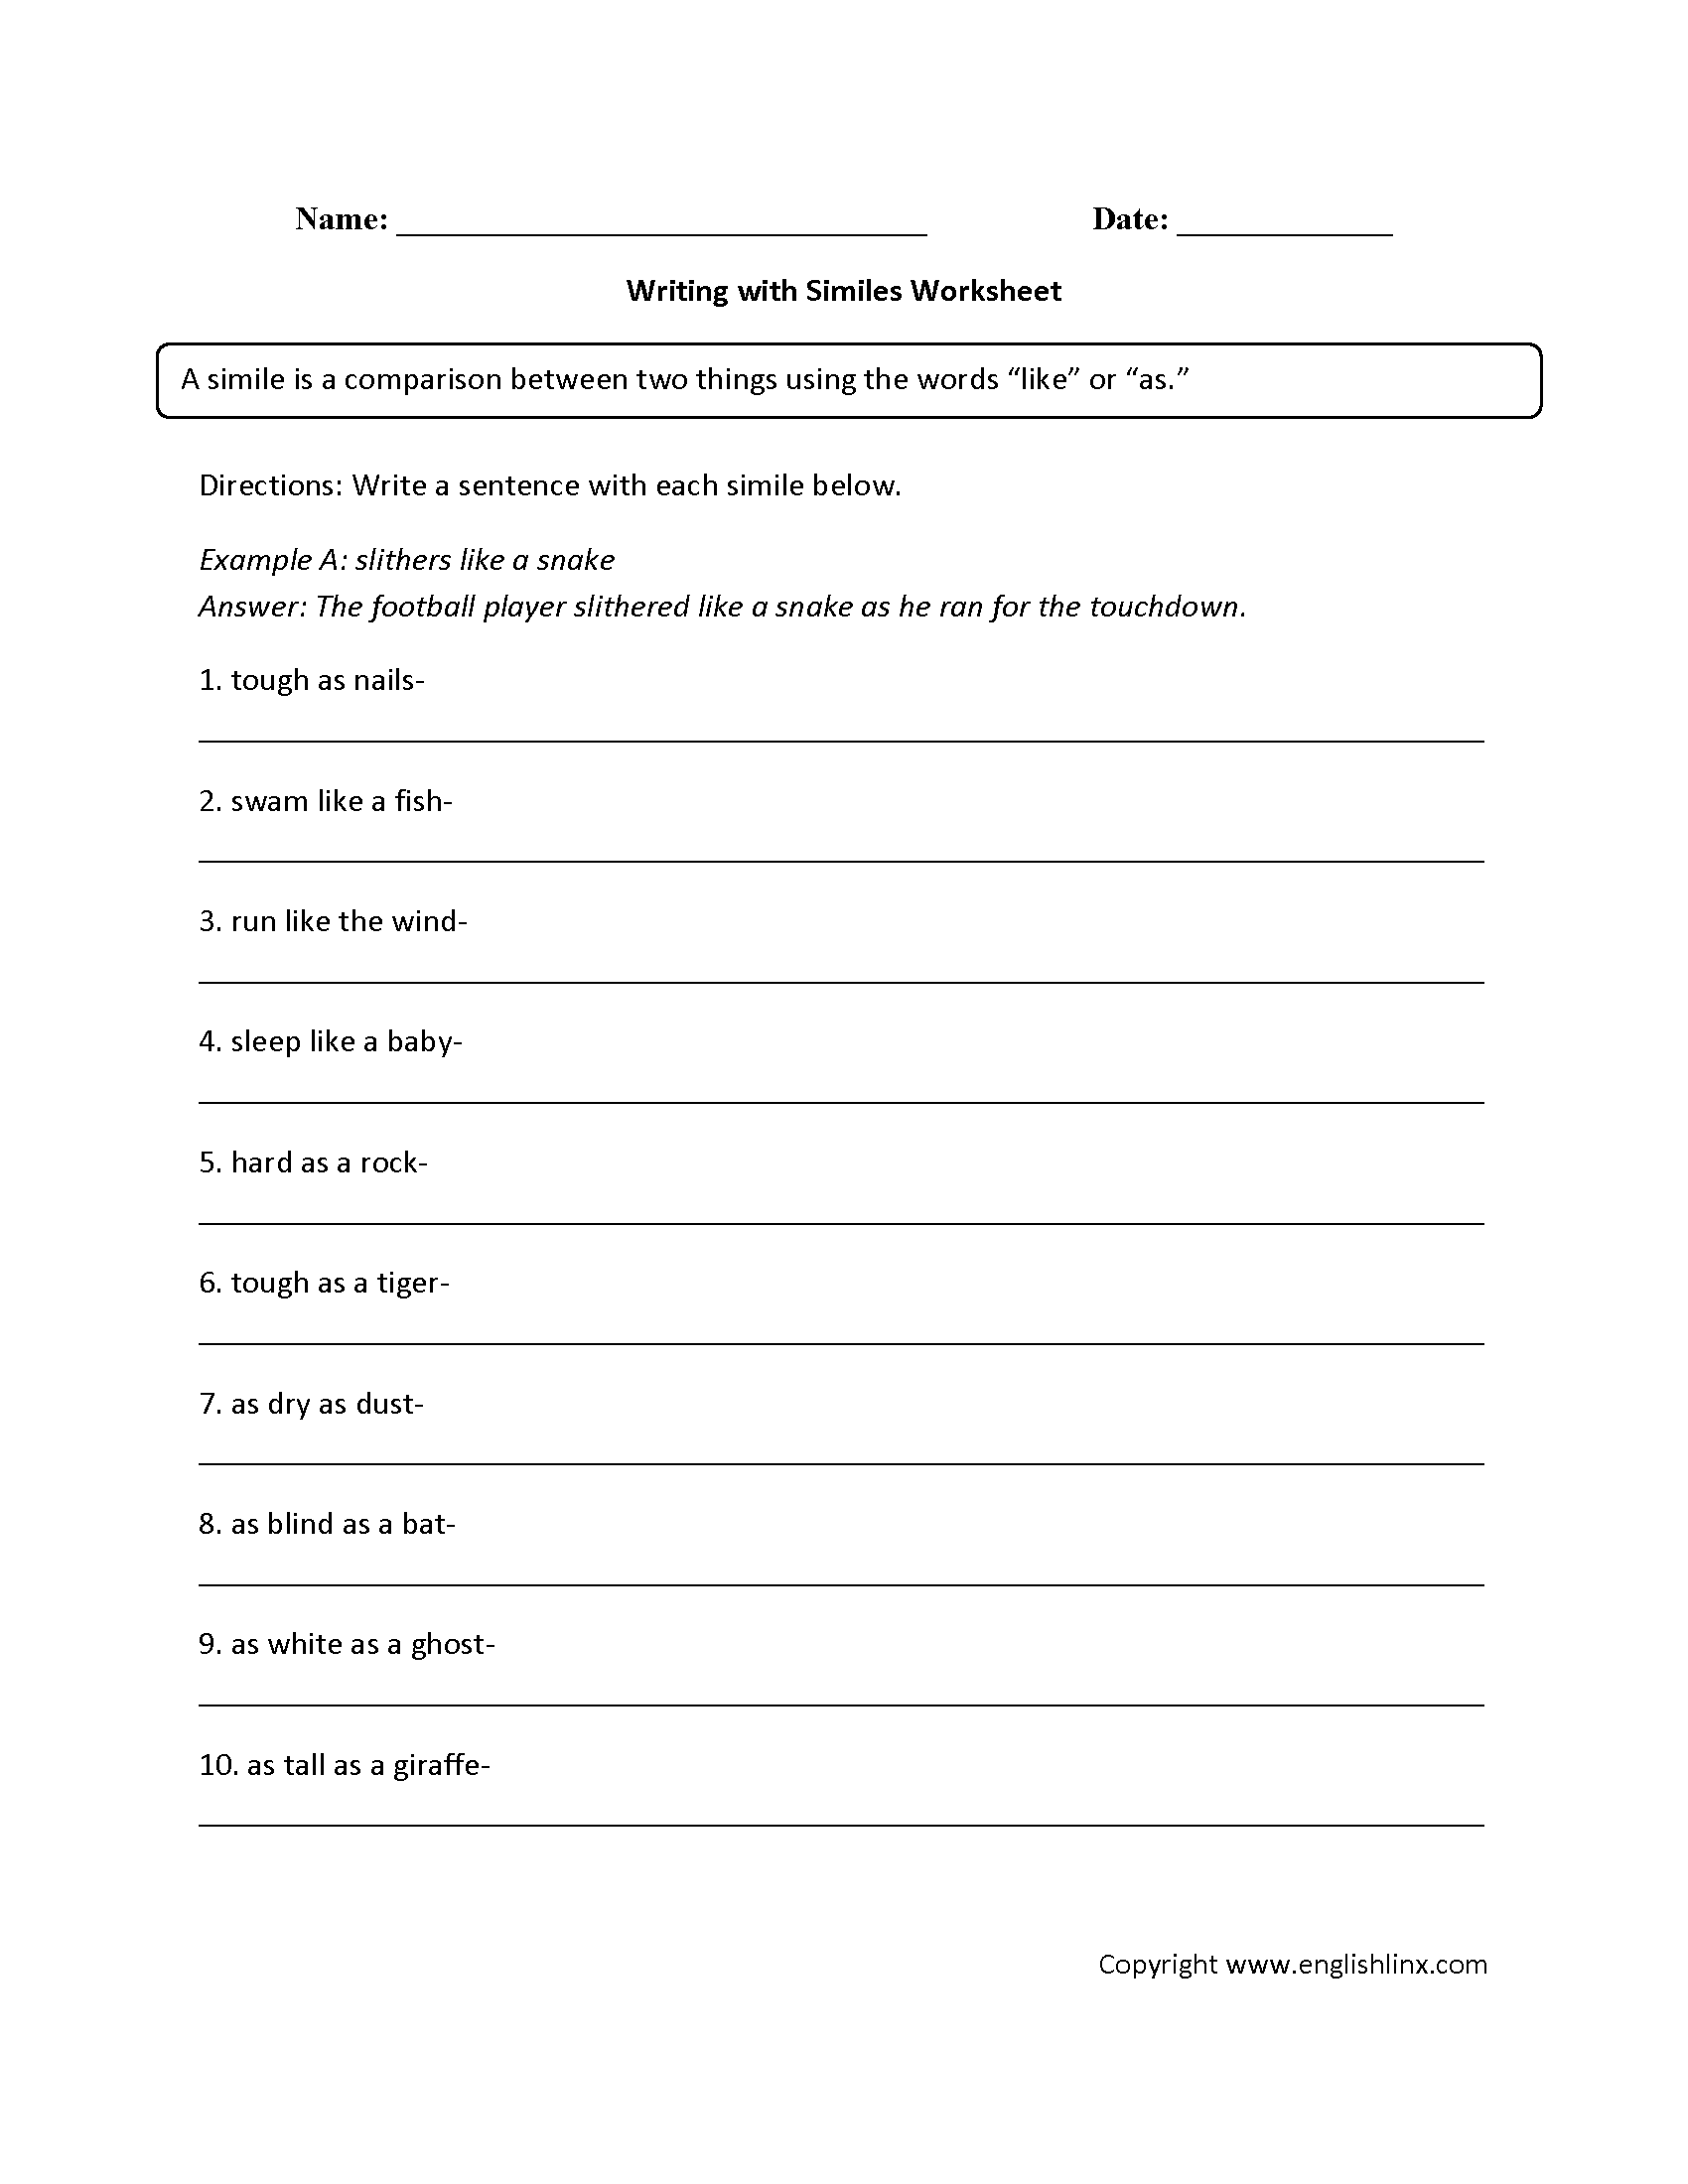 Similes Worksheet 4th Grade Promotiontablecovers Metaphor/simile sorts and practice #distancelearningtpt. similes worksheet 4th grade